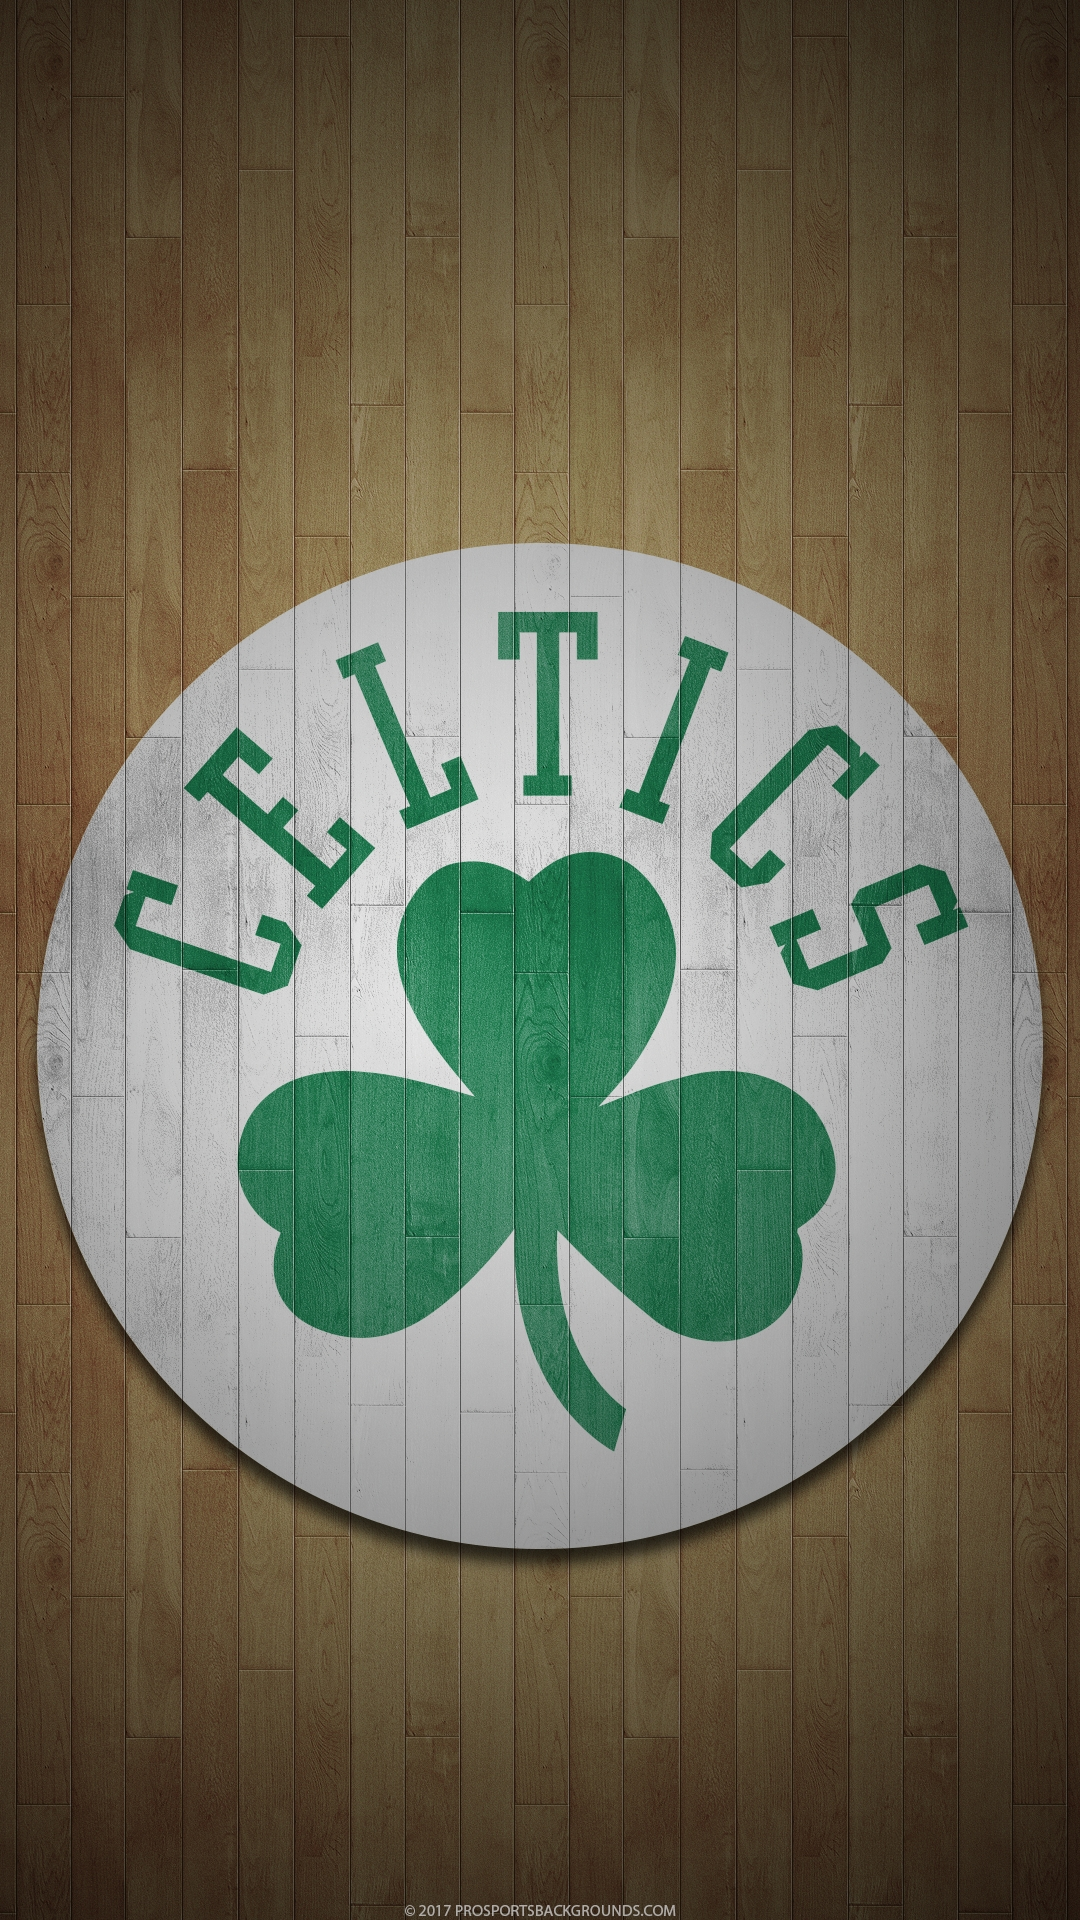 10 Top Boston Celtics Wallpaper For Android Full Hd 1080p For Pc